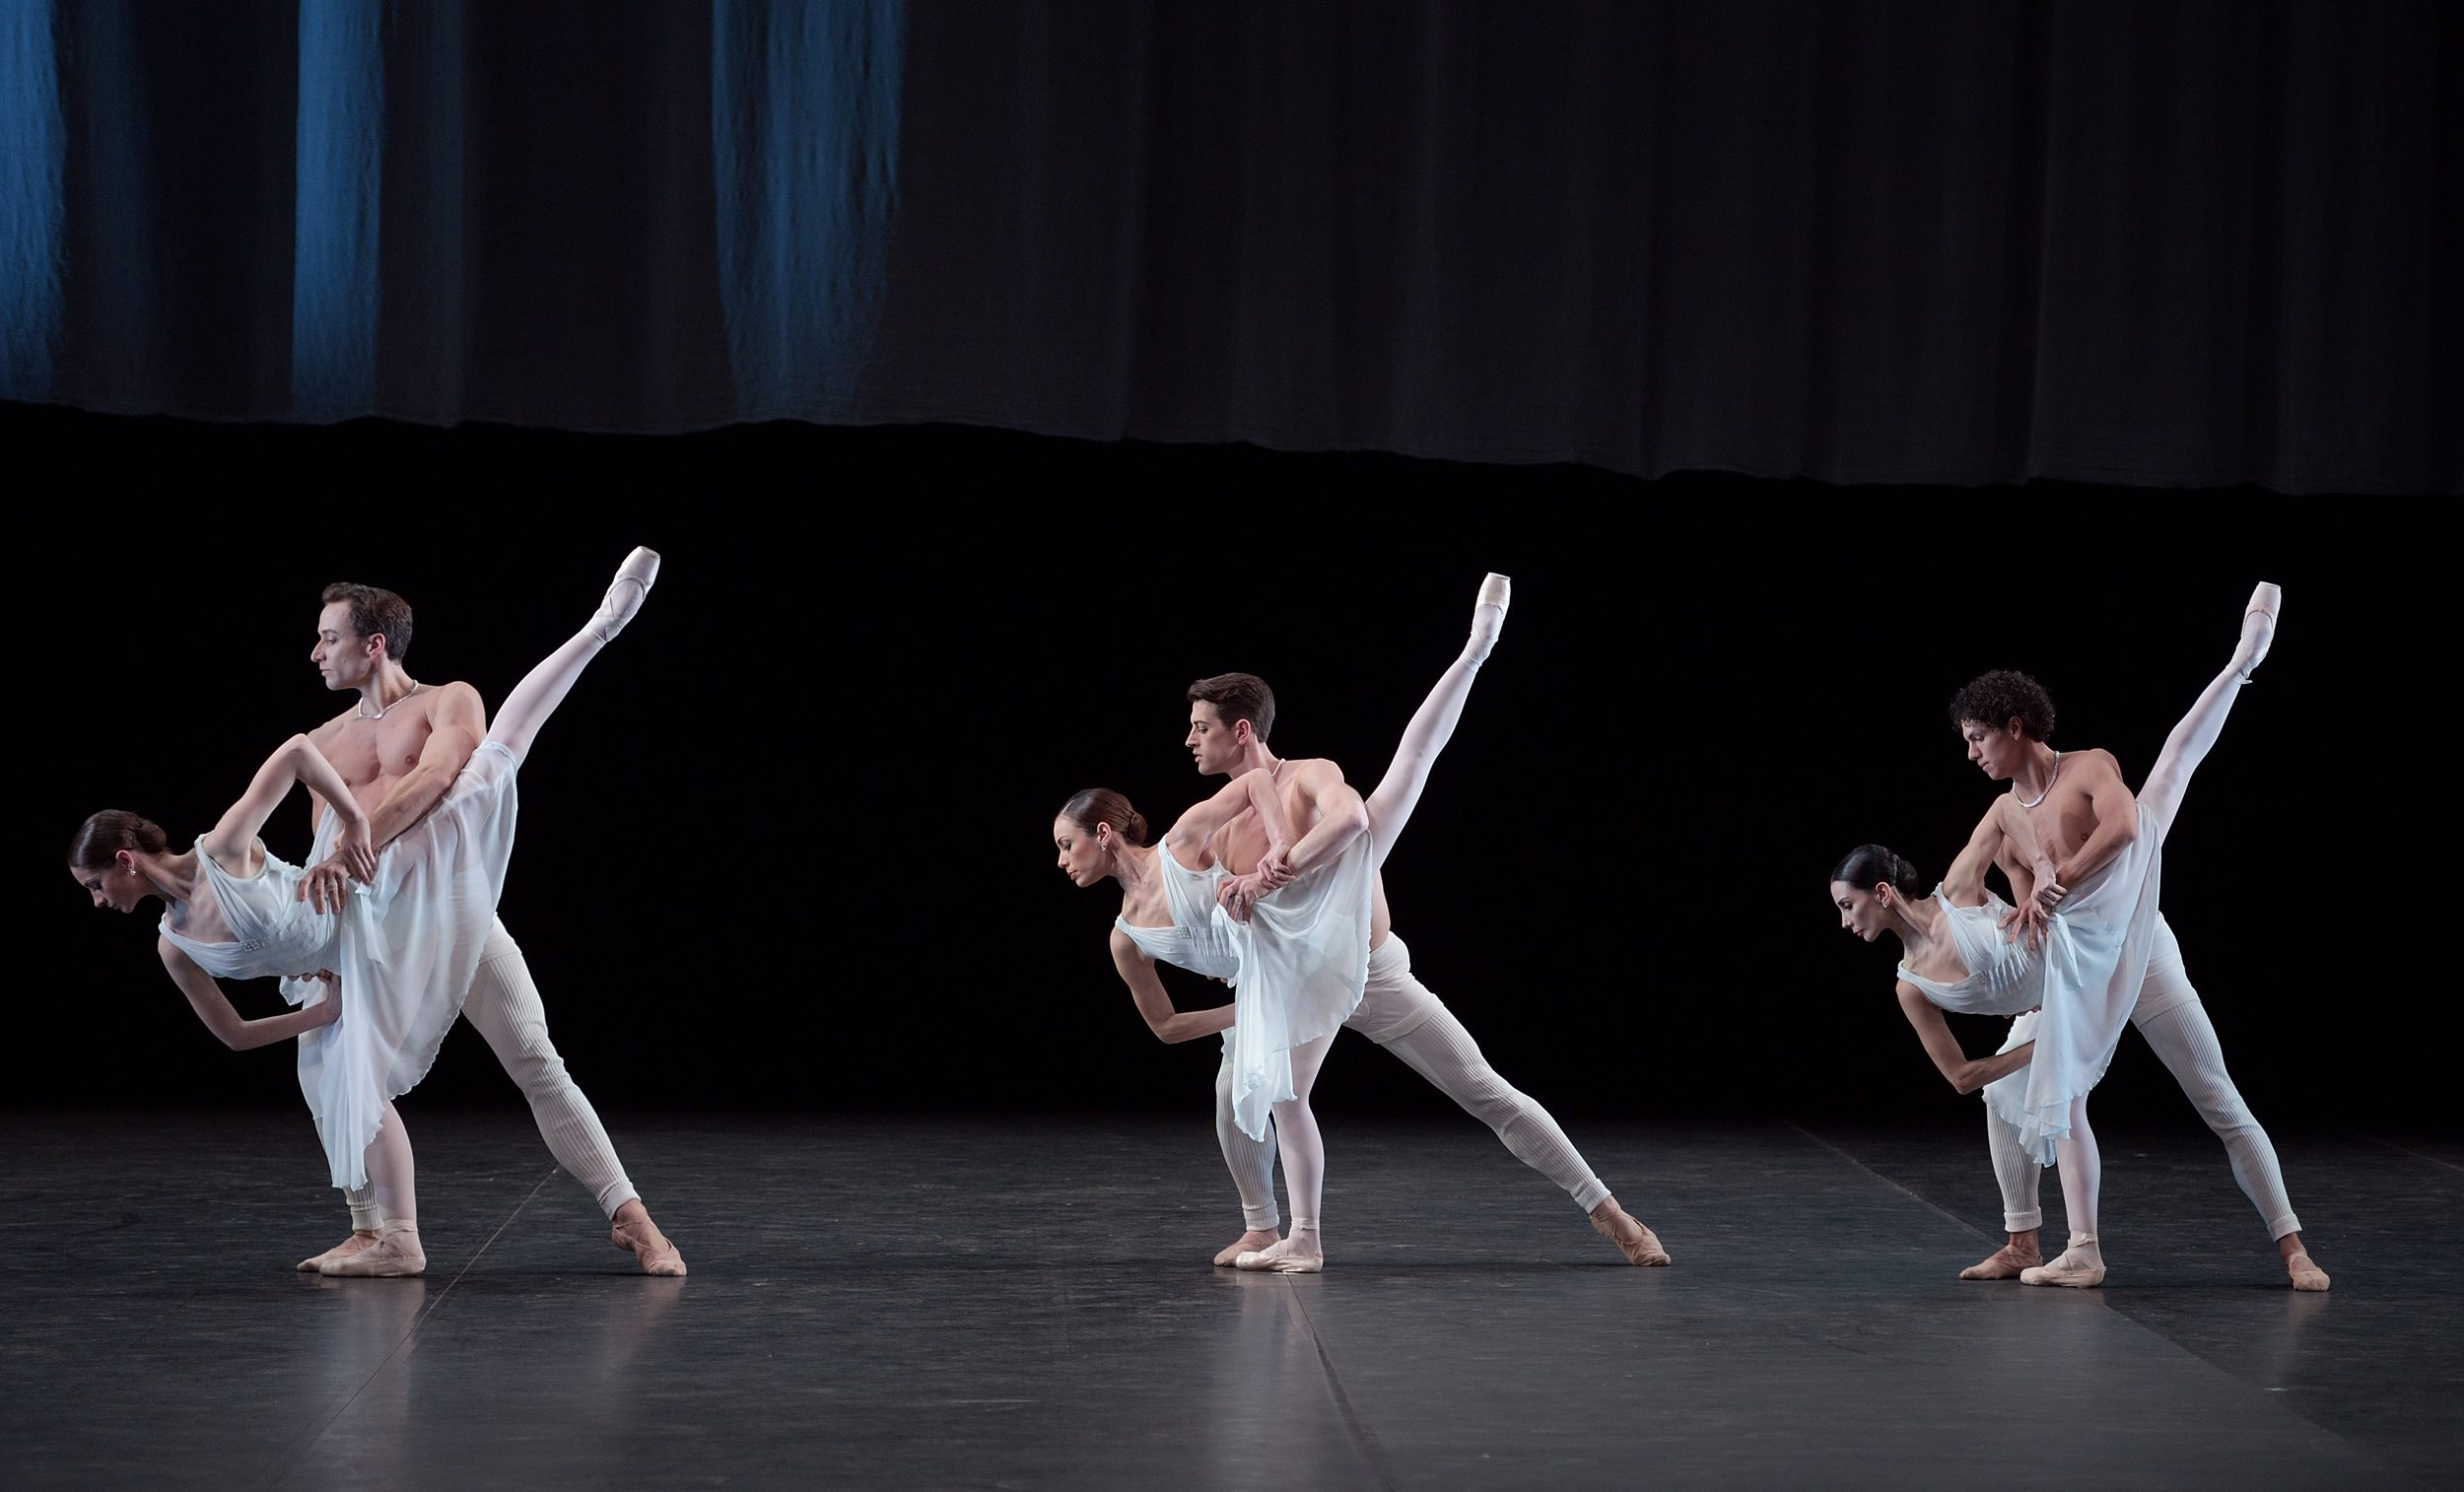 English-National-Ballet-in-Adagio-Hammerklavier(c)-Laurent-Liotardo-(2)-2500px